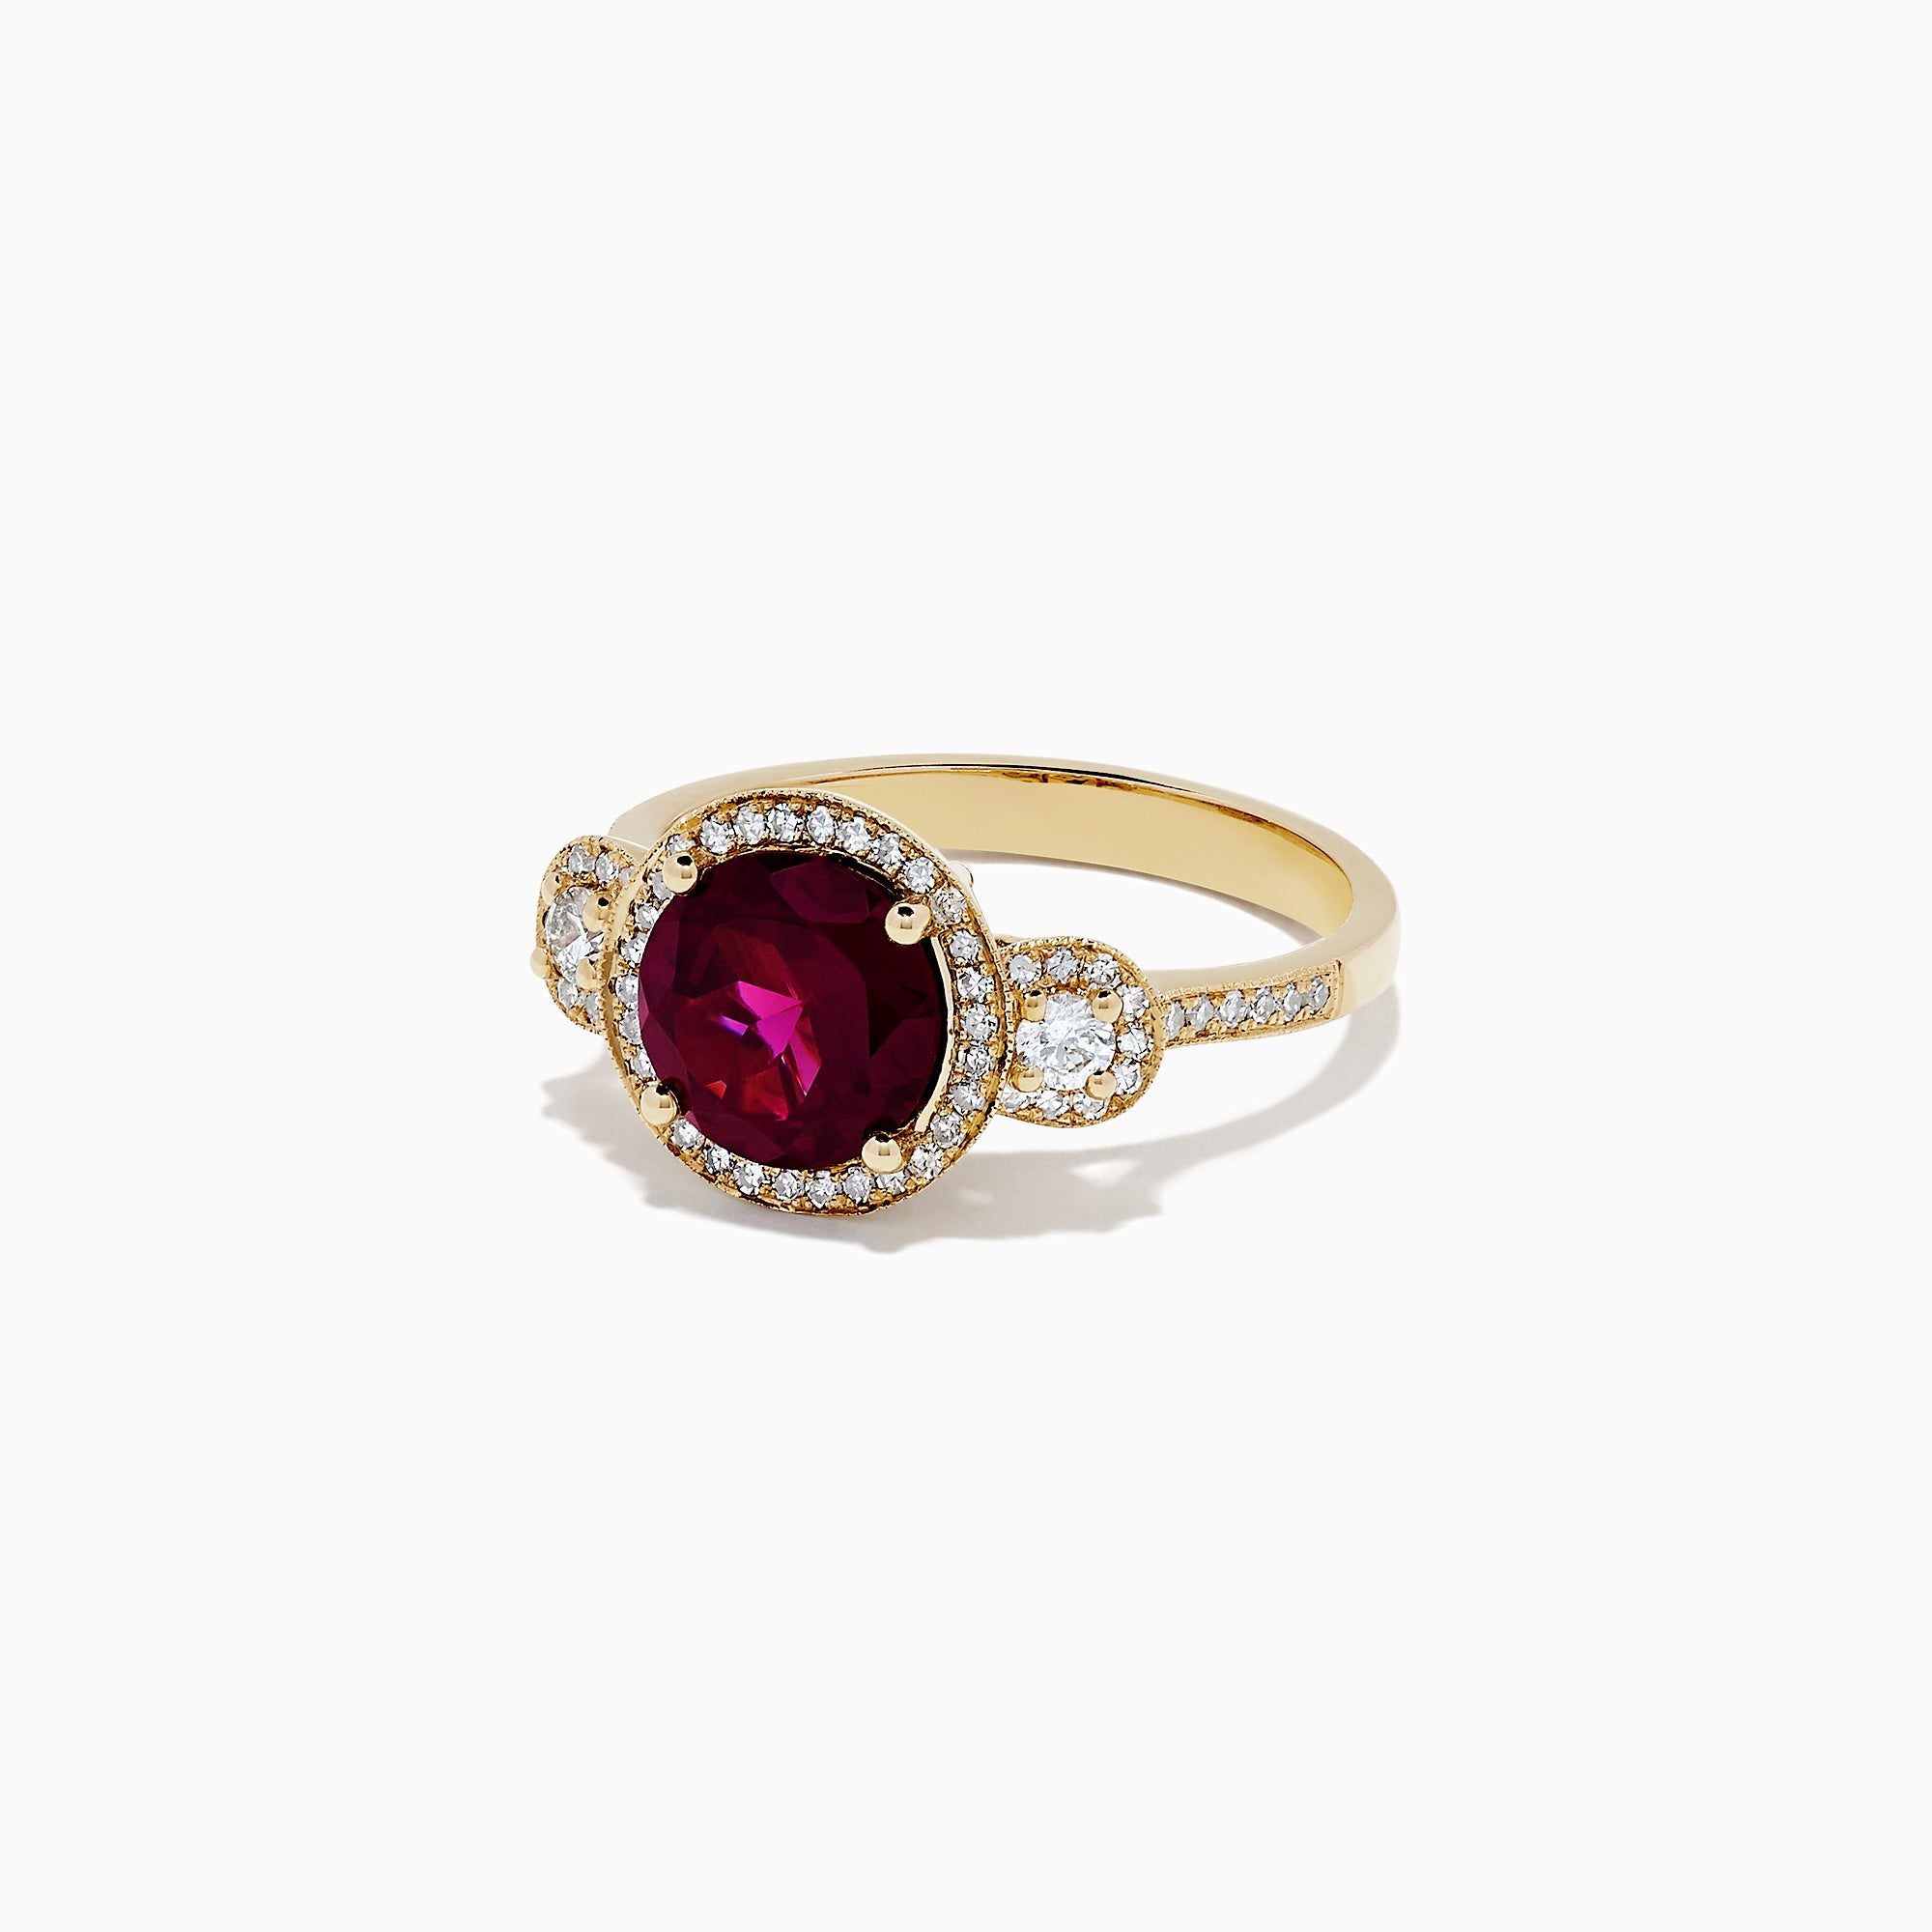 Effy Bordeaux 14K Yellow Gold Rhodolite Garnet and Diamond Ring, 2.14 TCW